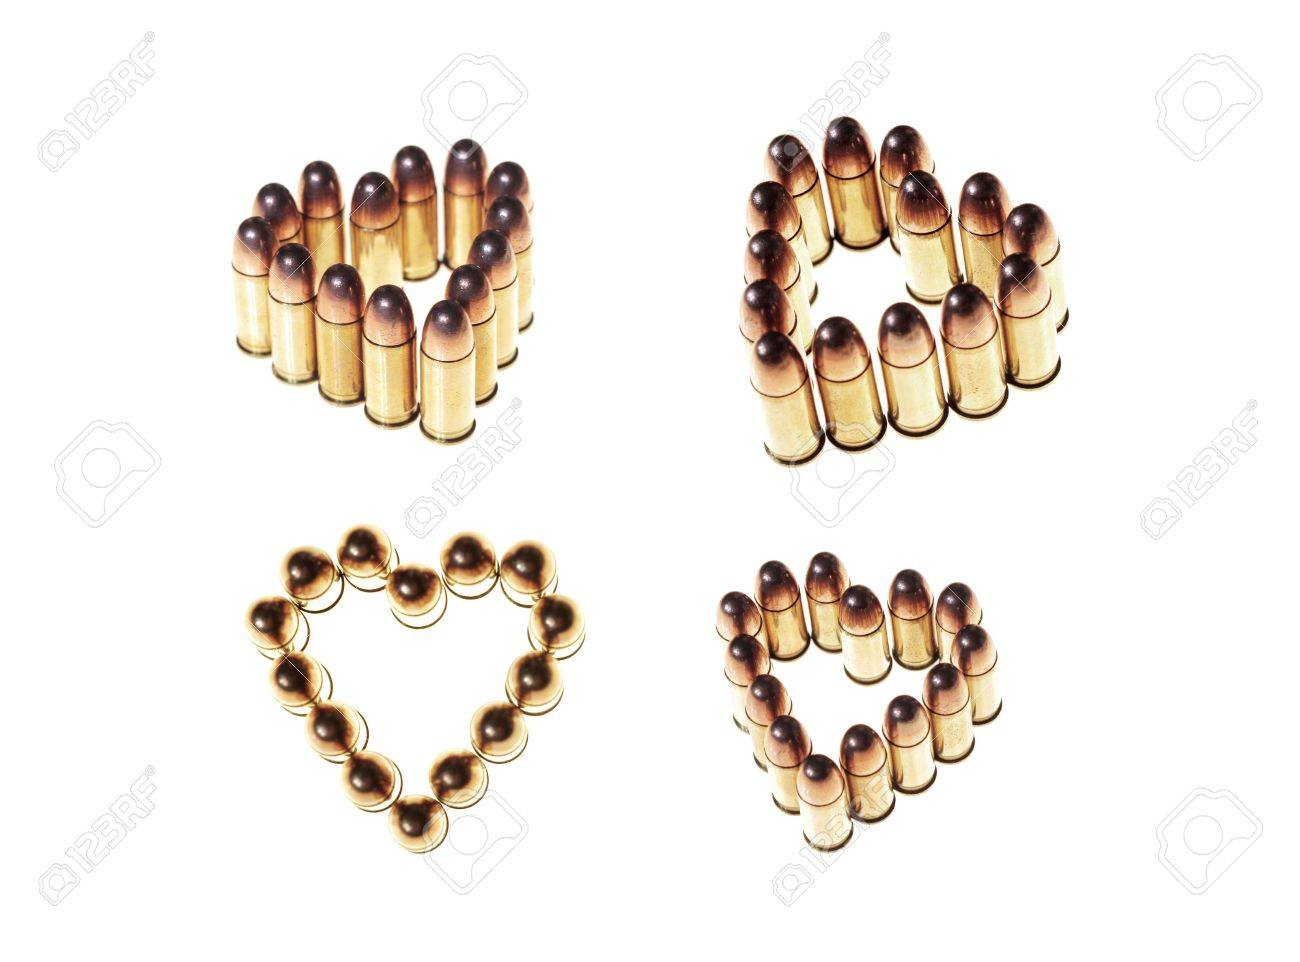 heart shaped bullets isolated on white background Stock Photo - 1193445